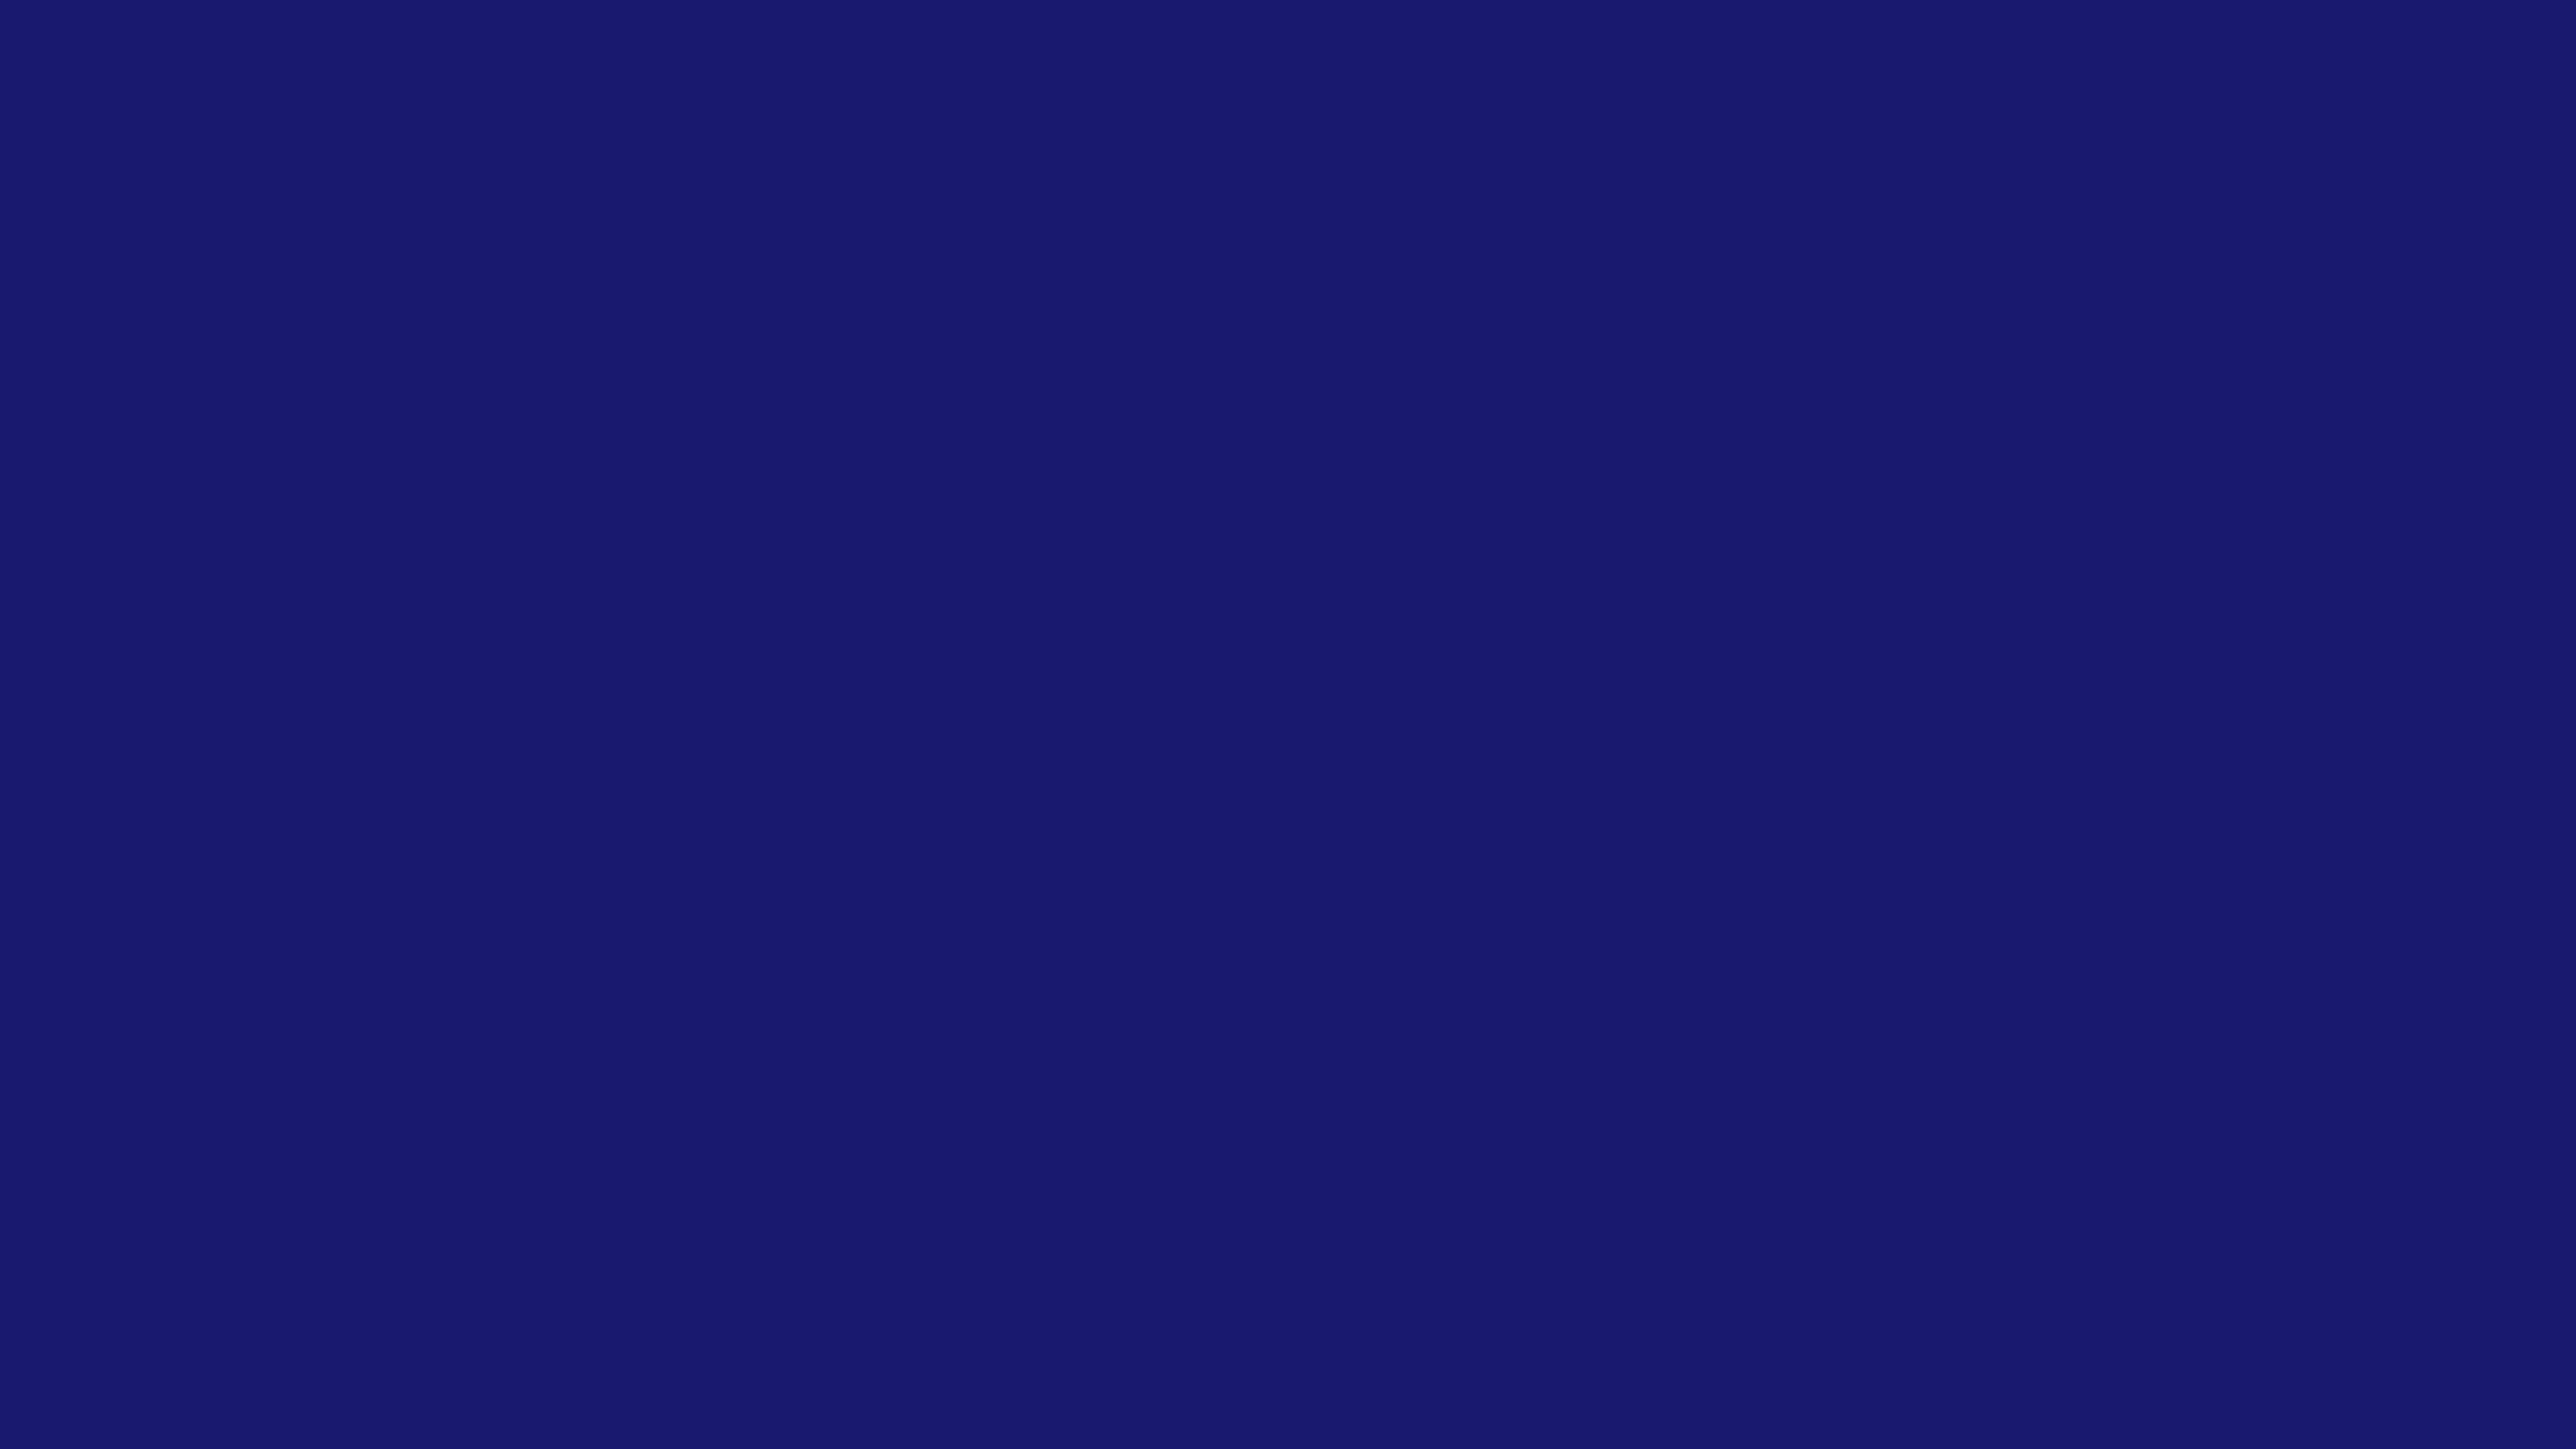 3840x2160 Midnight Blue Solid Color Background